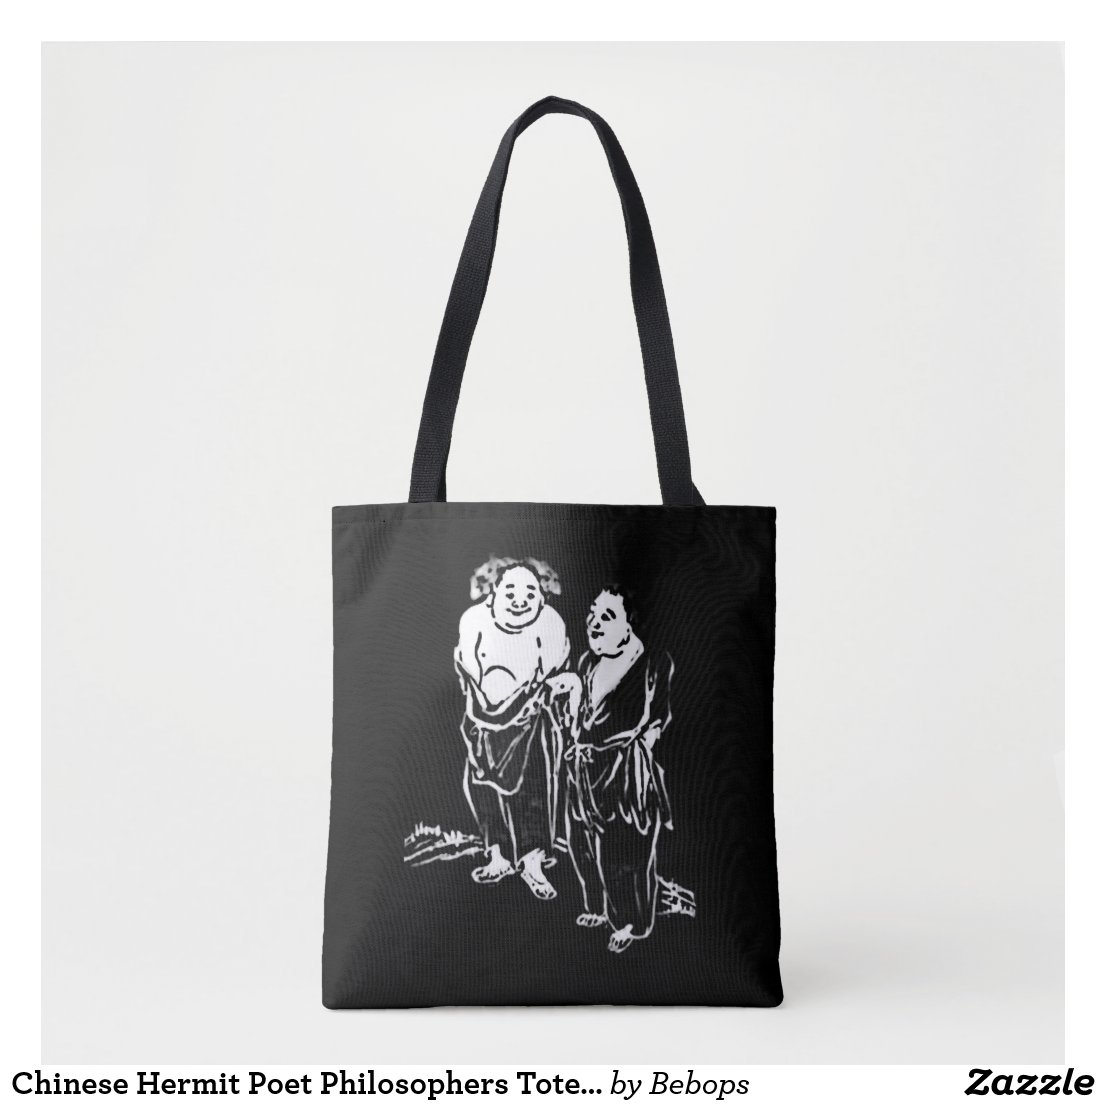 Chinese Hermit Poet Philosophers Tote Bag